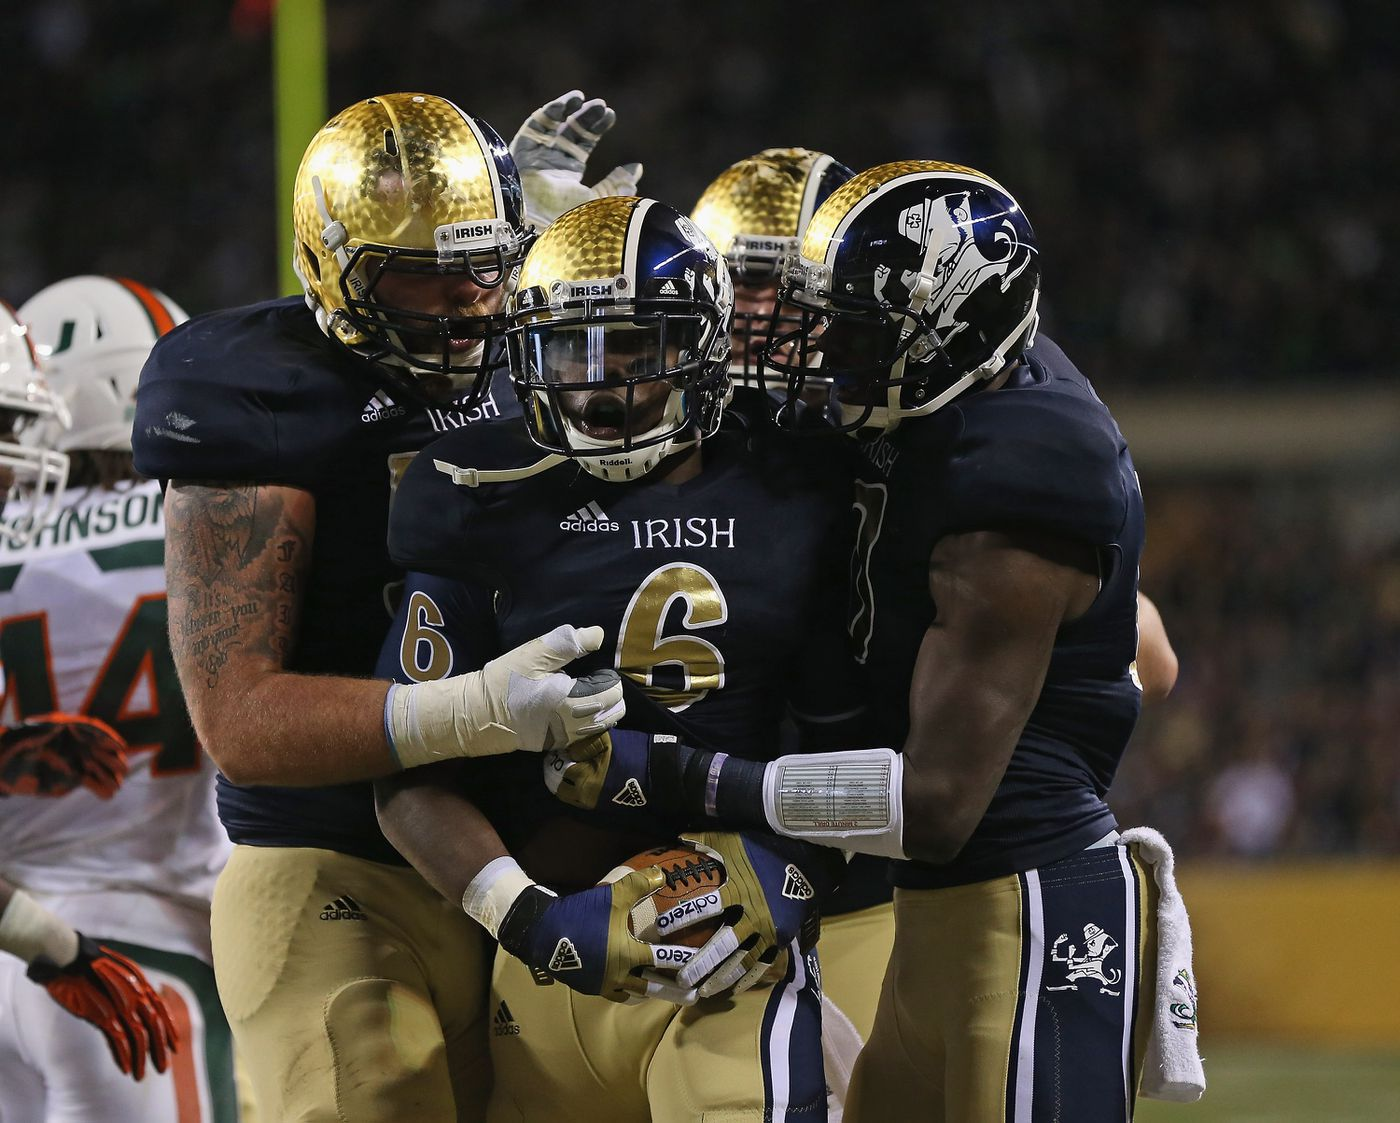 Notre Dame S Yankees Uniforms Are Sure To Be Polarizing Sbnation Com